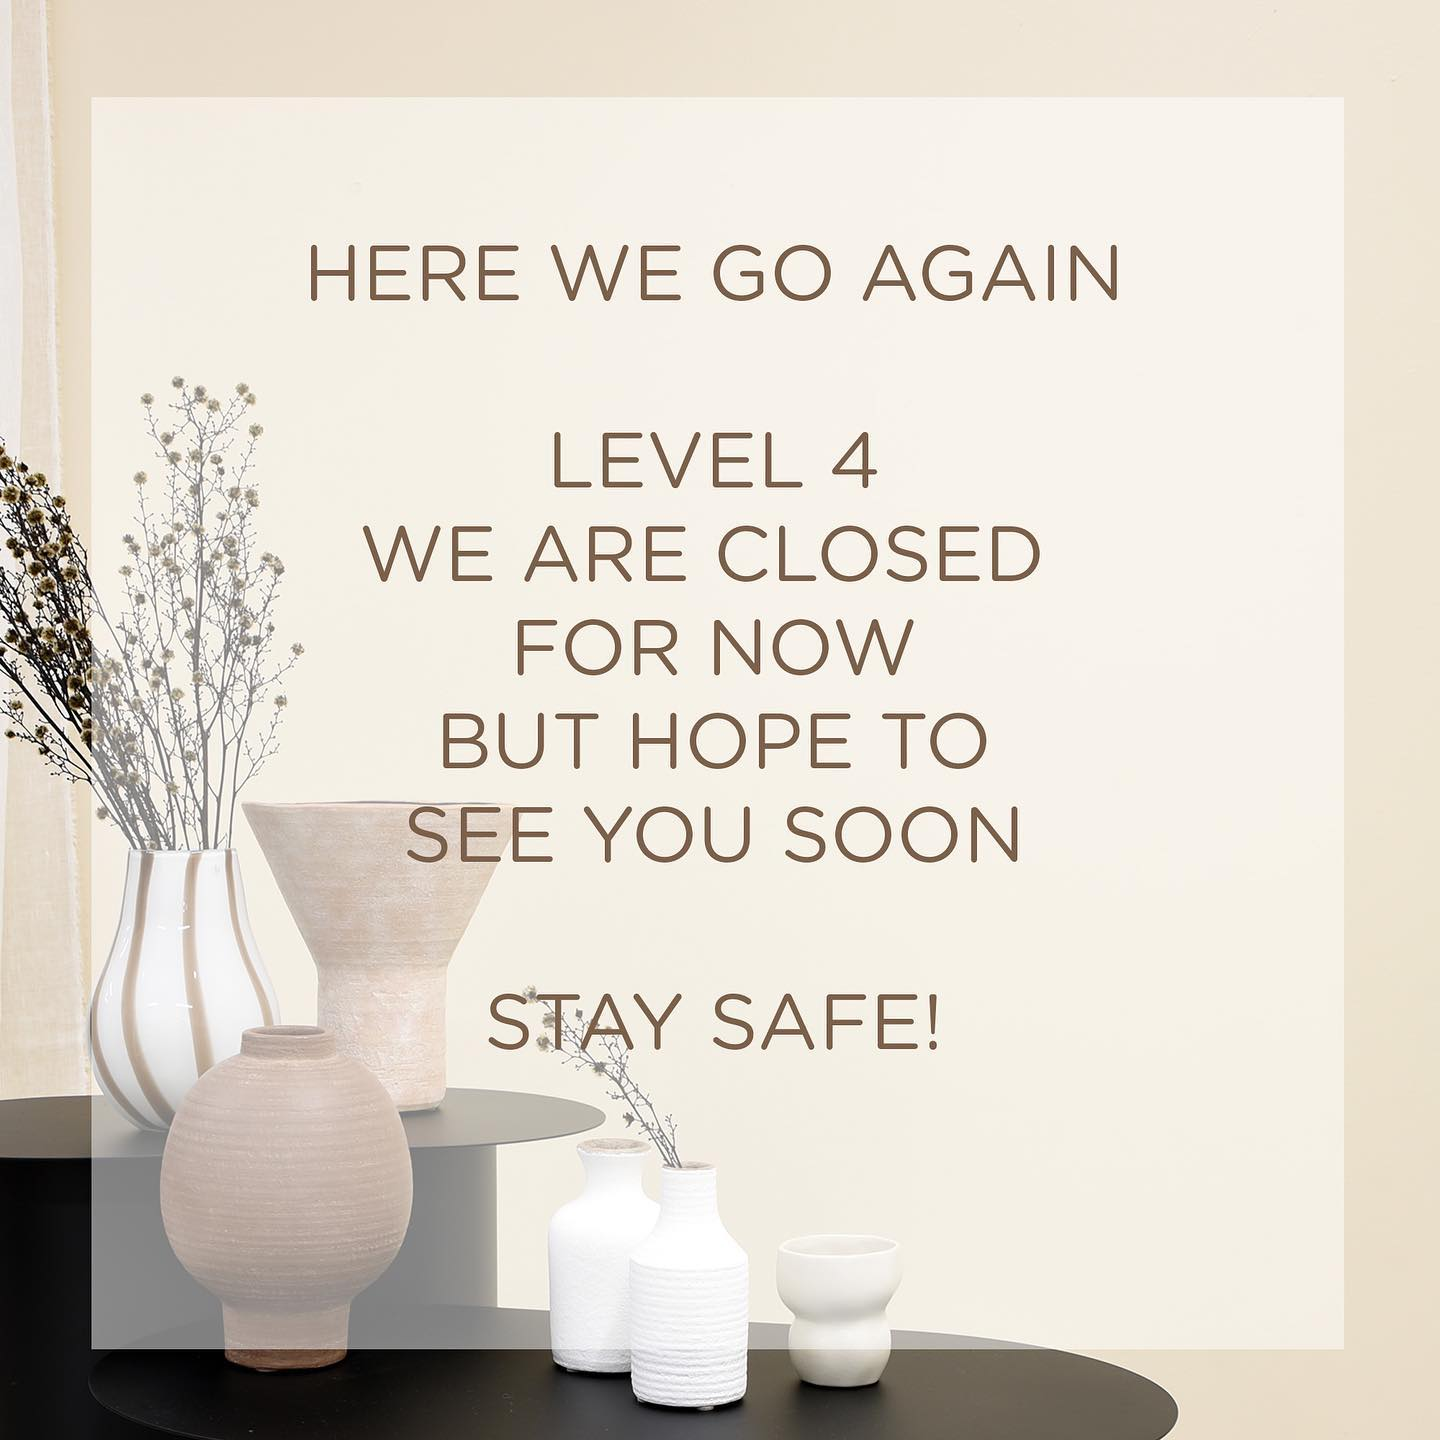 Auckland Level 4. We are closed for now but hope to see everyone as soon as we can. We have our latest catalogue up on our website and will have all our new product up this week. We are all working from home so if you have any queries, please contact us. Stay safe everyone! x